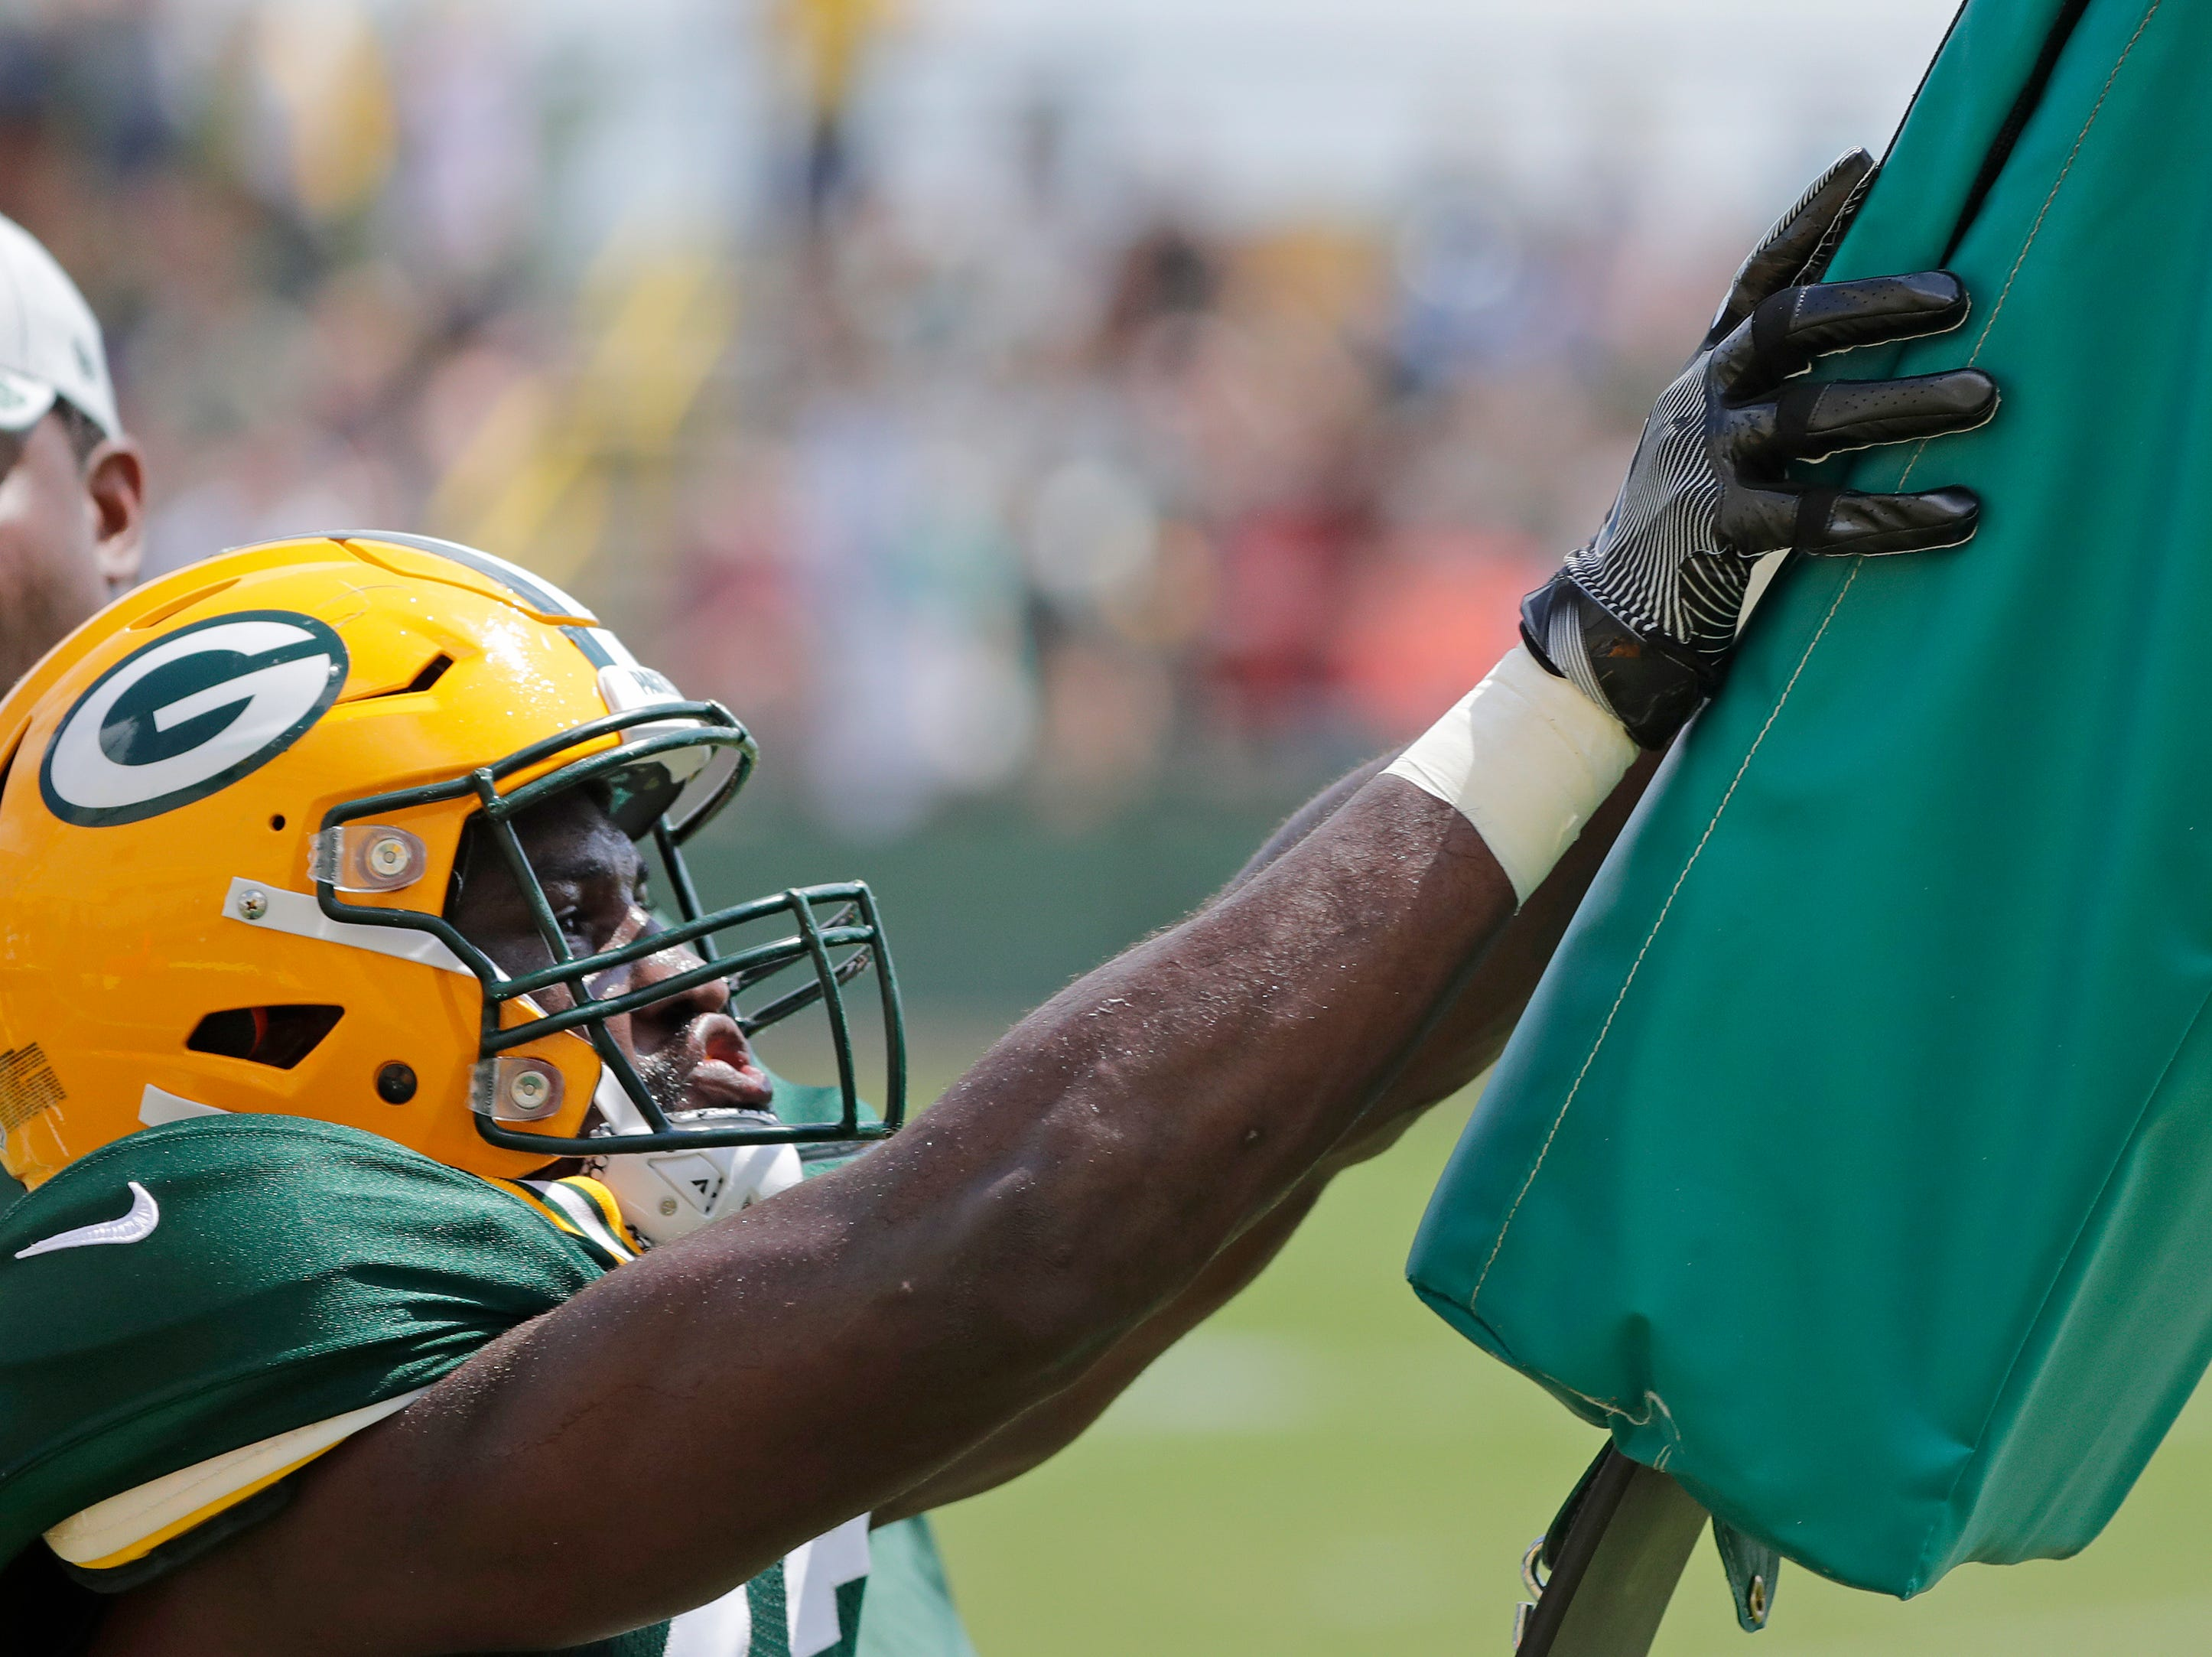 Green Bay Packers linebacker Oren Burks (42) runs through a hitting drill during training camp practice at Ray Nitschke Field on Friday, August 3, 2018 in Ashwaubenon, Wis. 